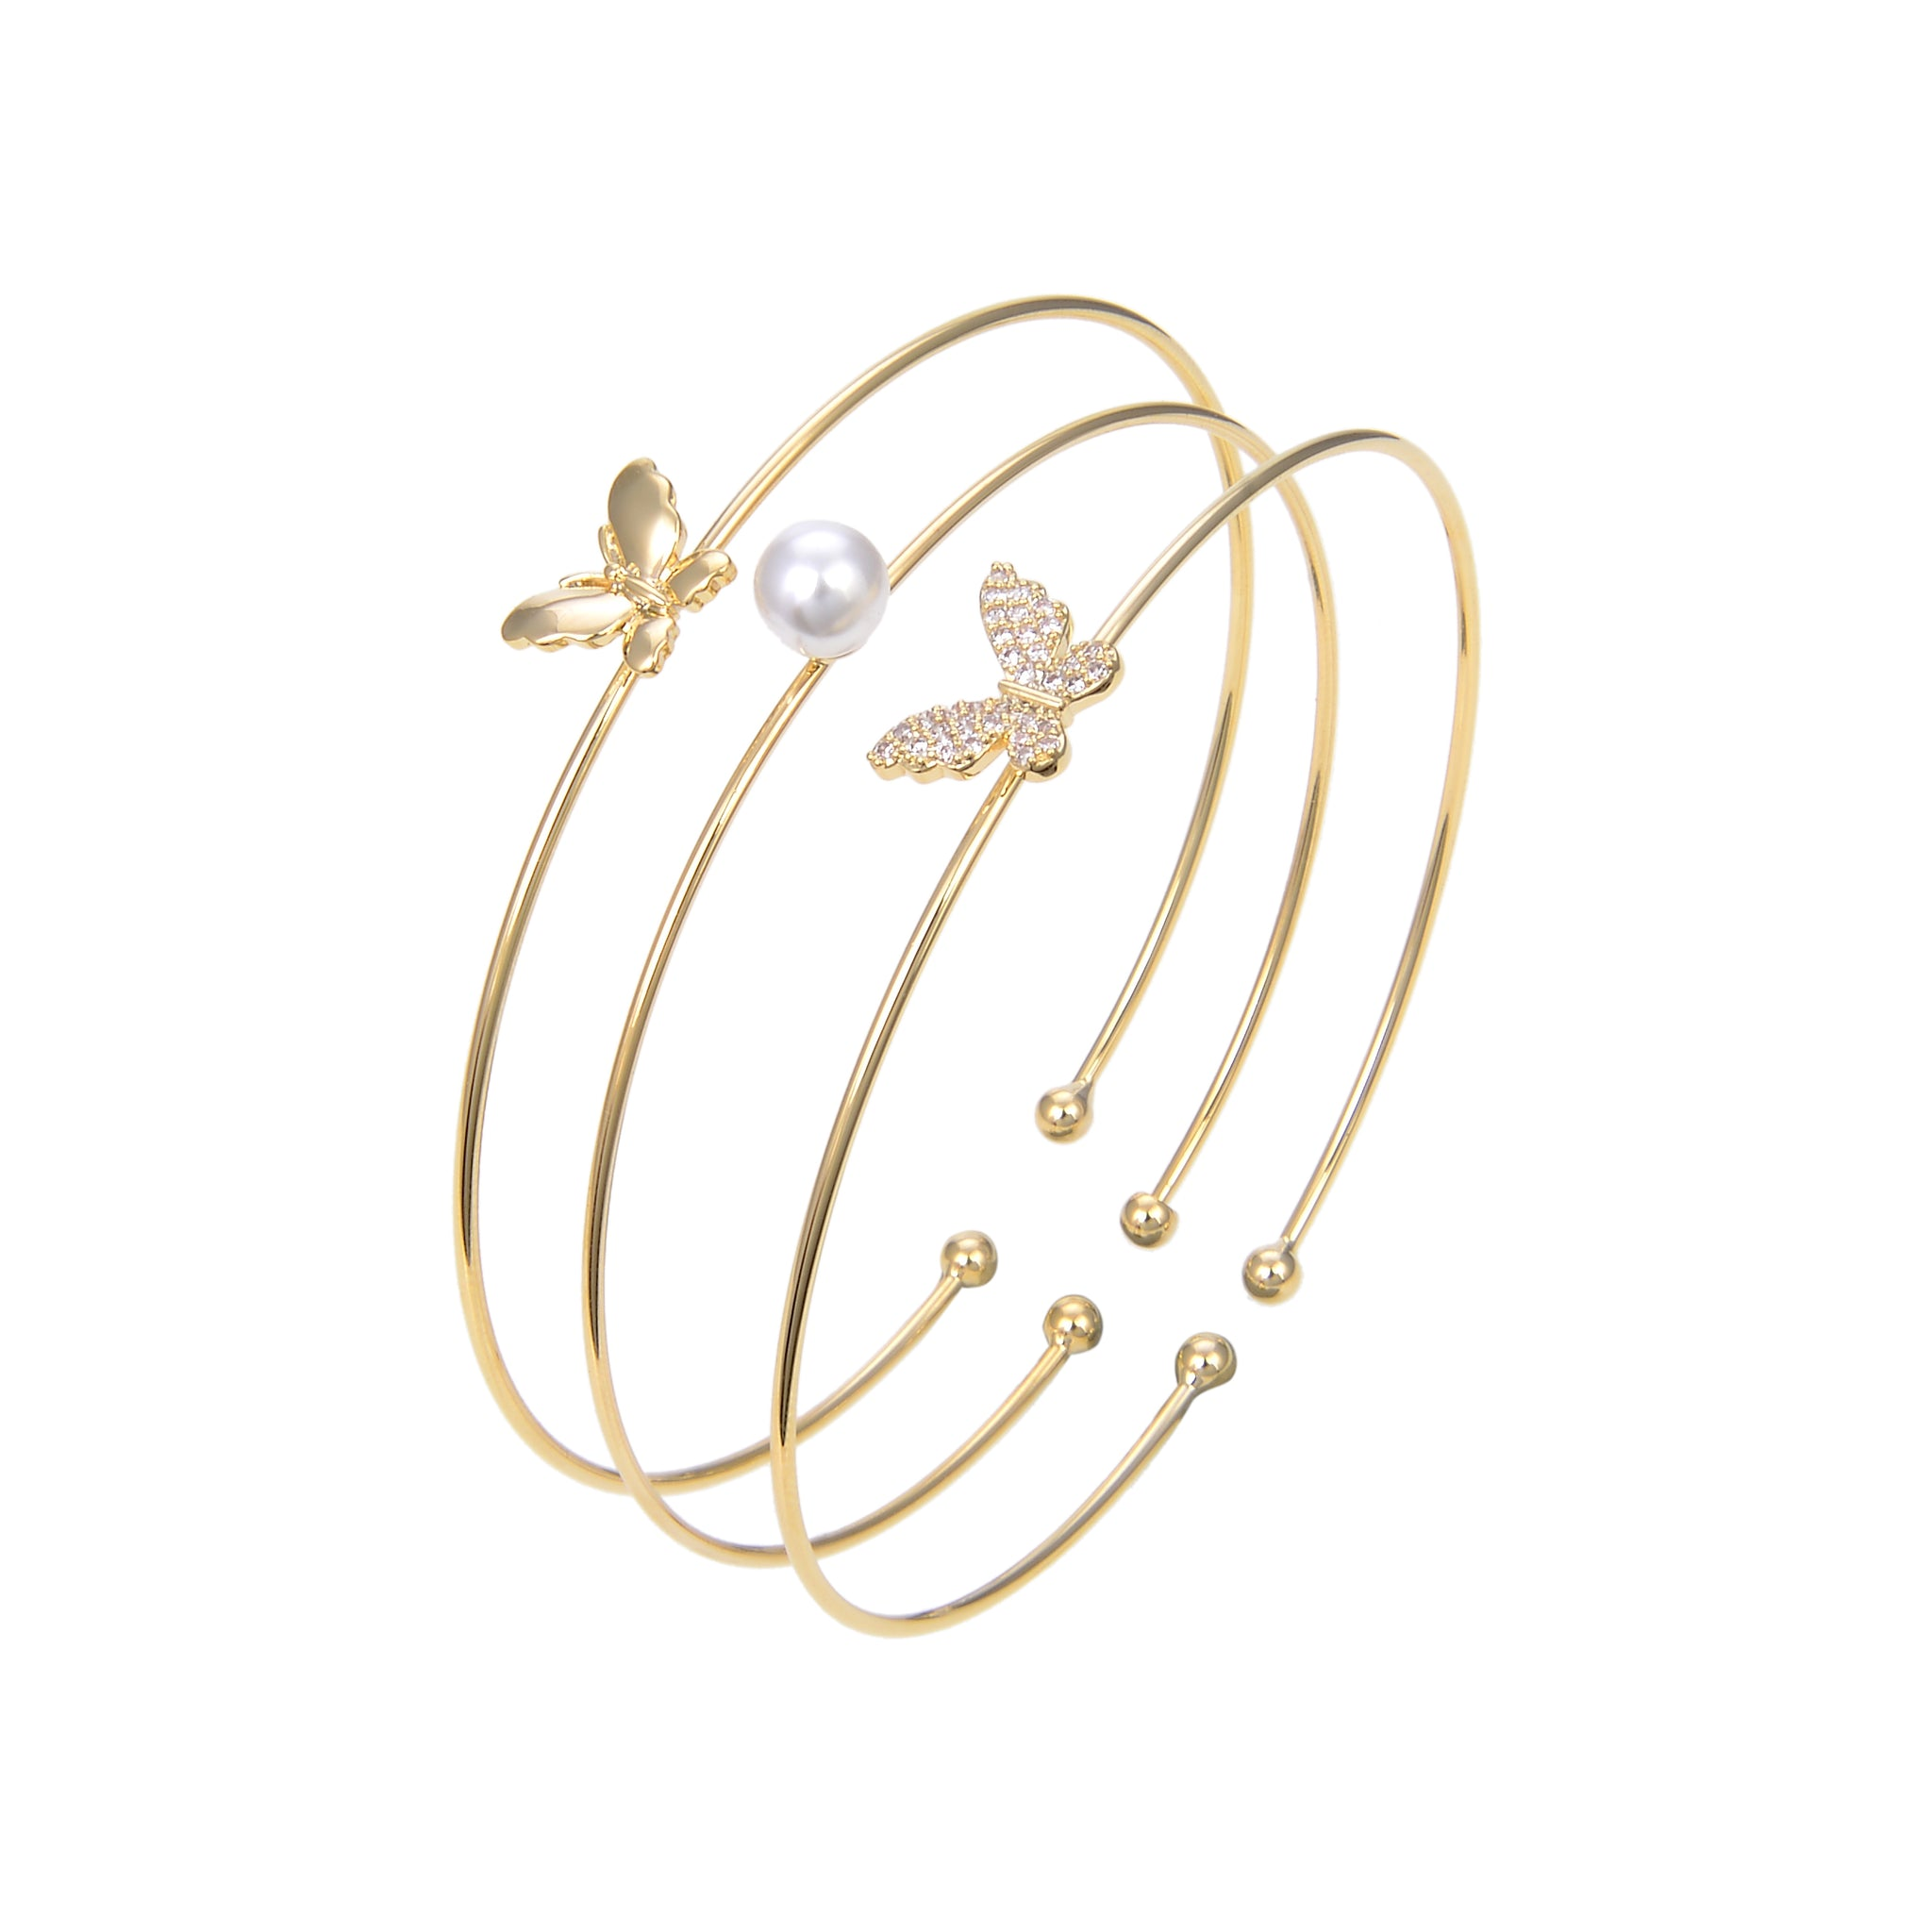 Gold Plated Cubic Zirconia Bangle Bracelet, Pearl Butterfly Shape CZ Bangle Bracelet